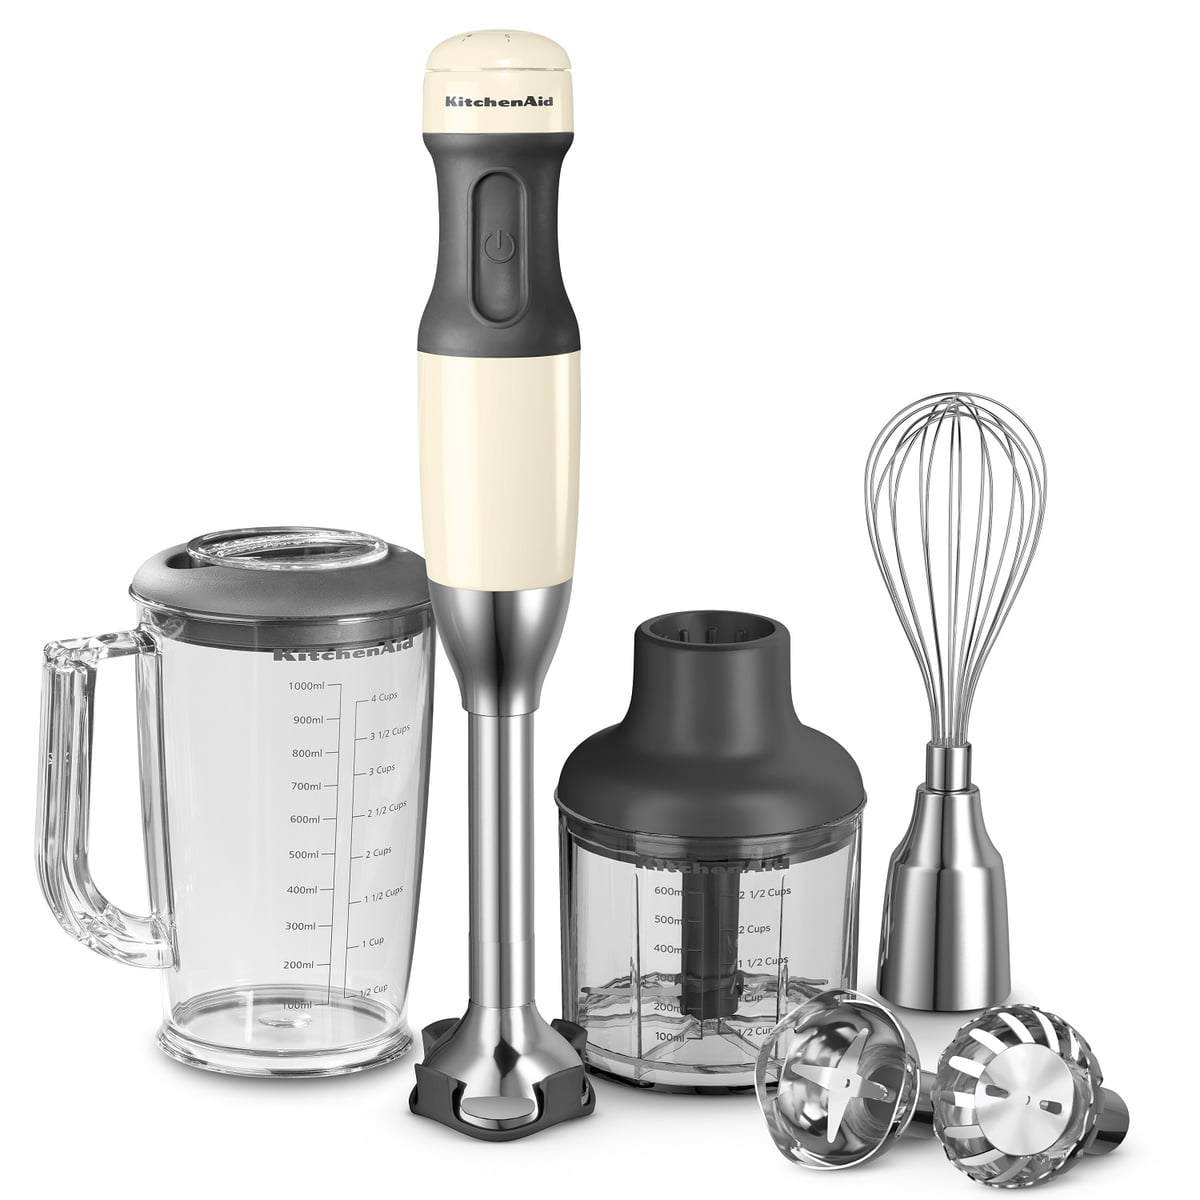 kitchenaid hand blender with 5 velocity l w accessories - Kitchen Aid Hand Mixer